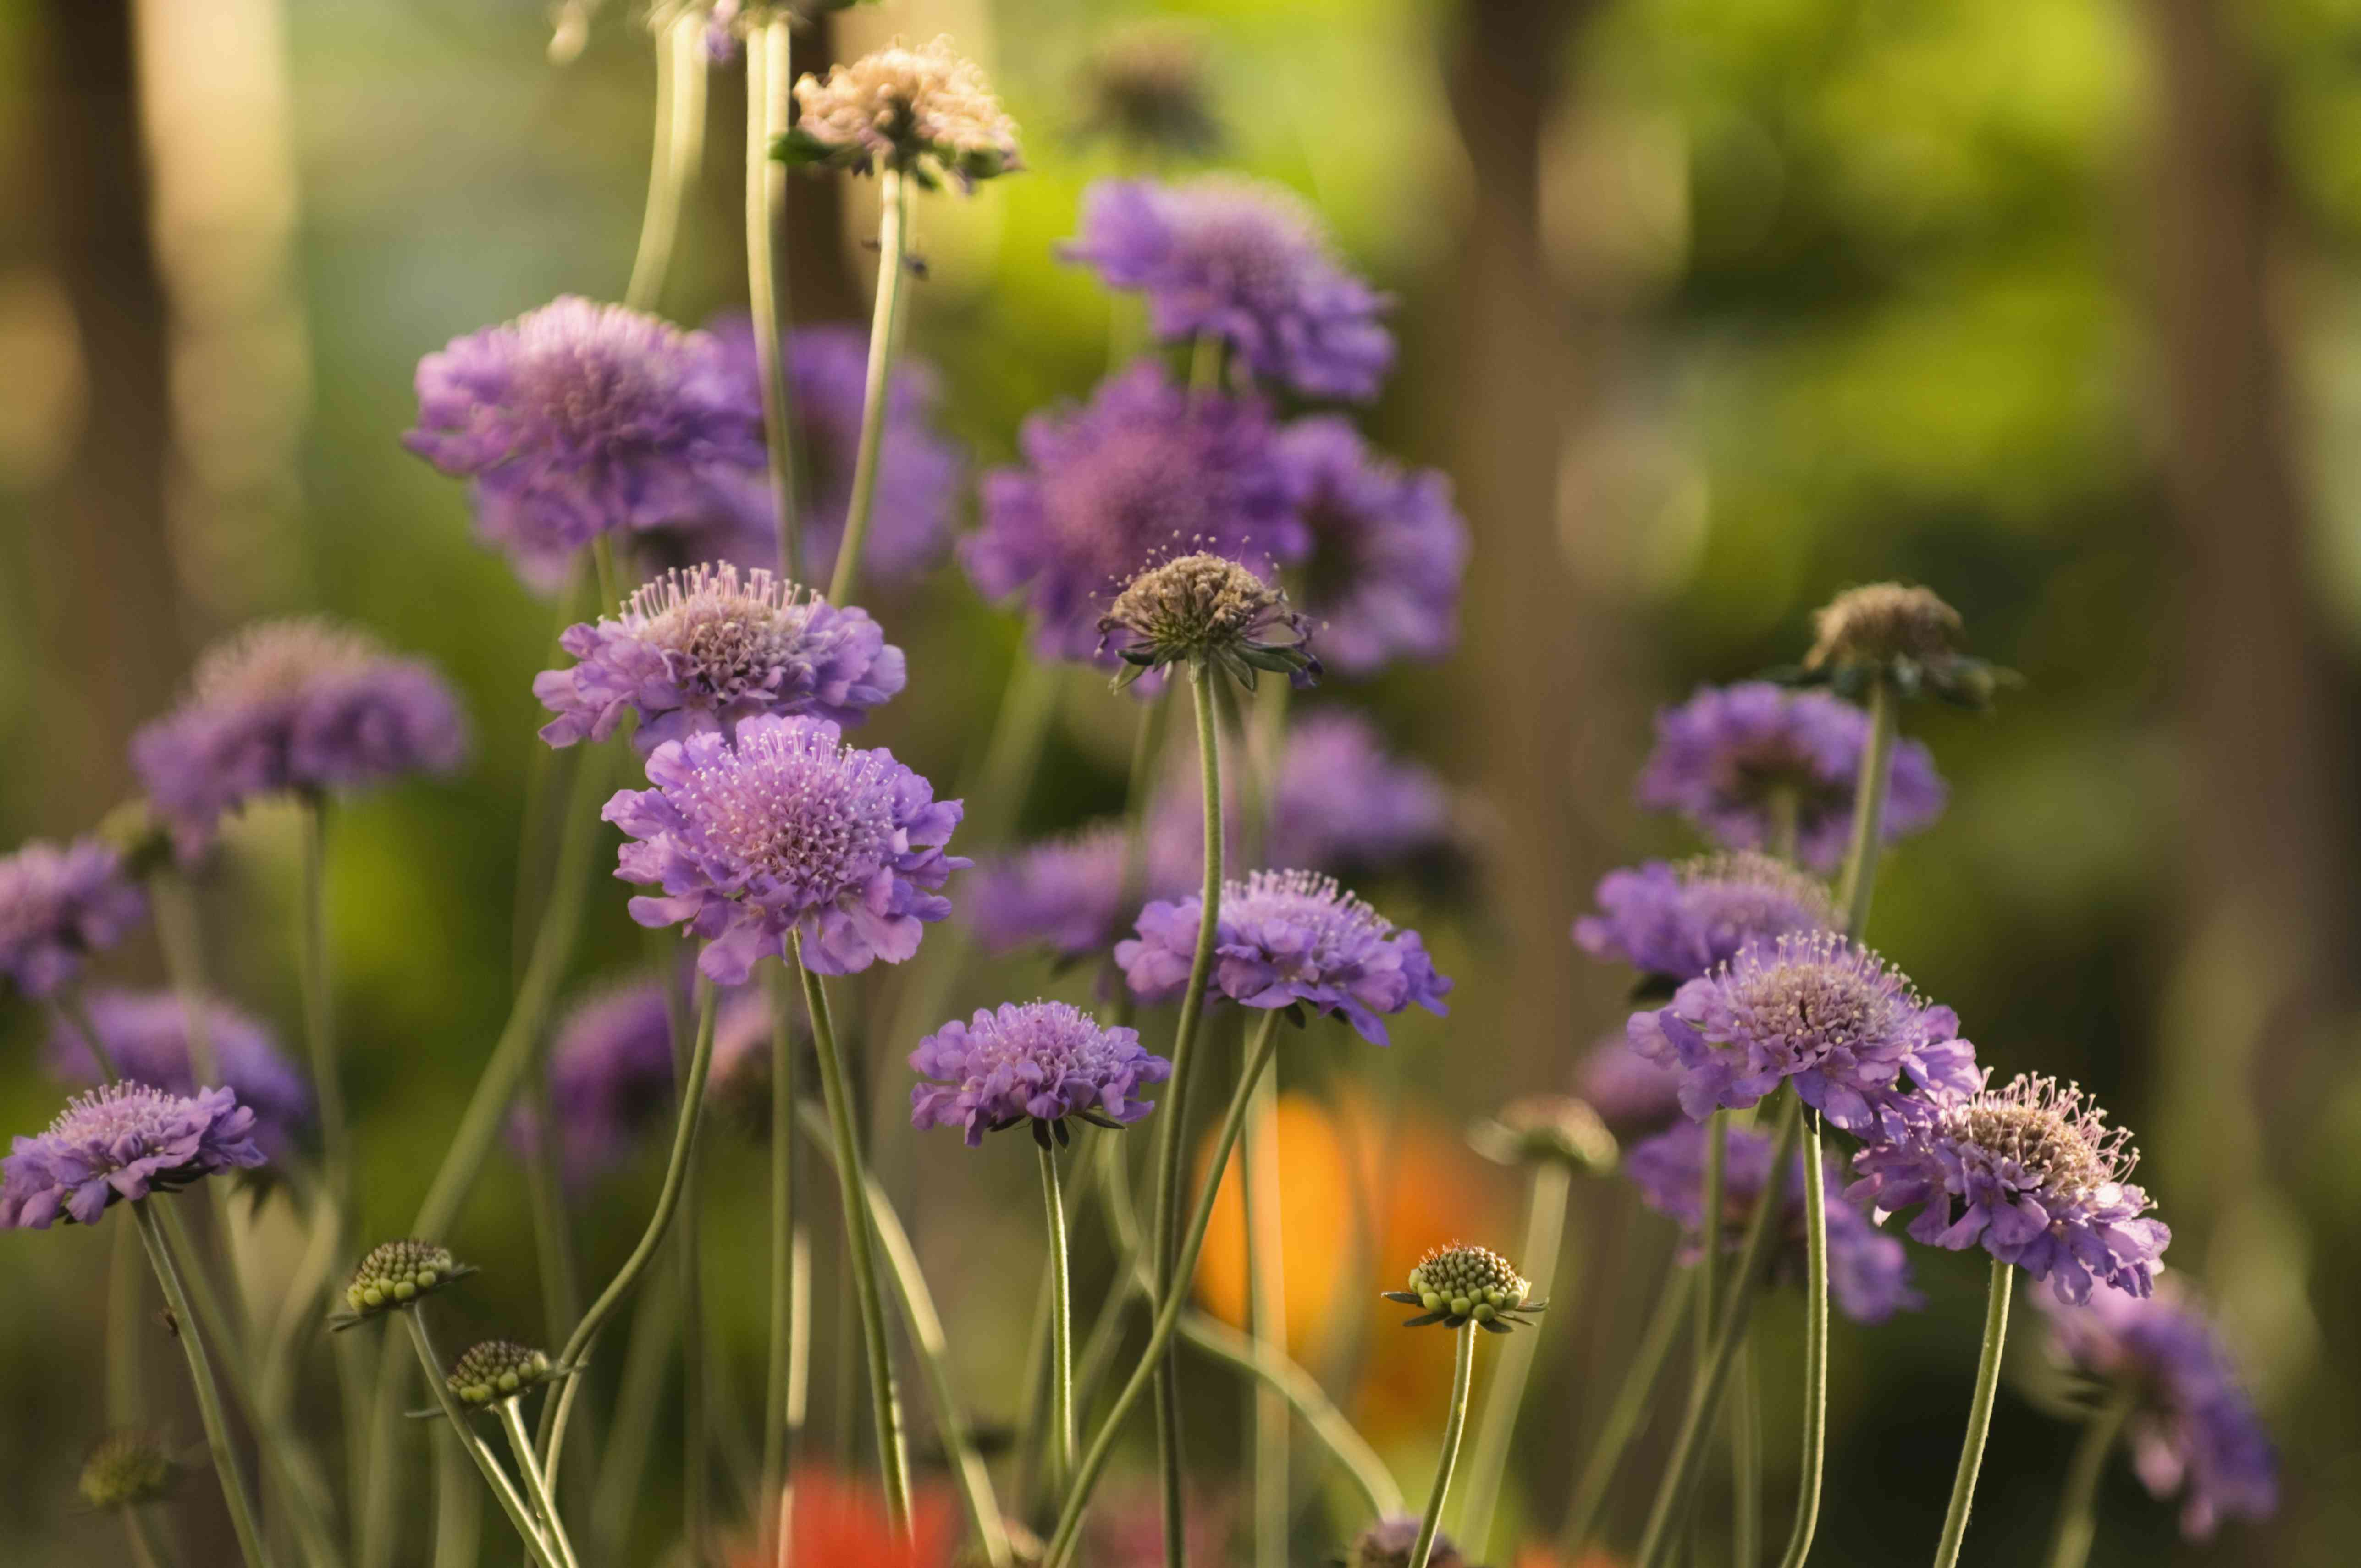 A Group of Lavender Scabiosa Flowers